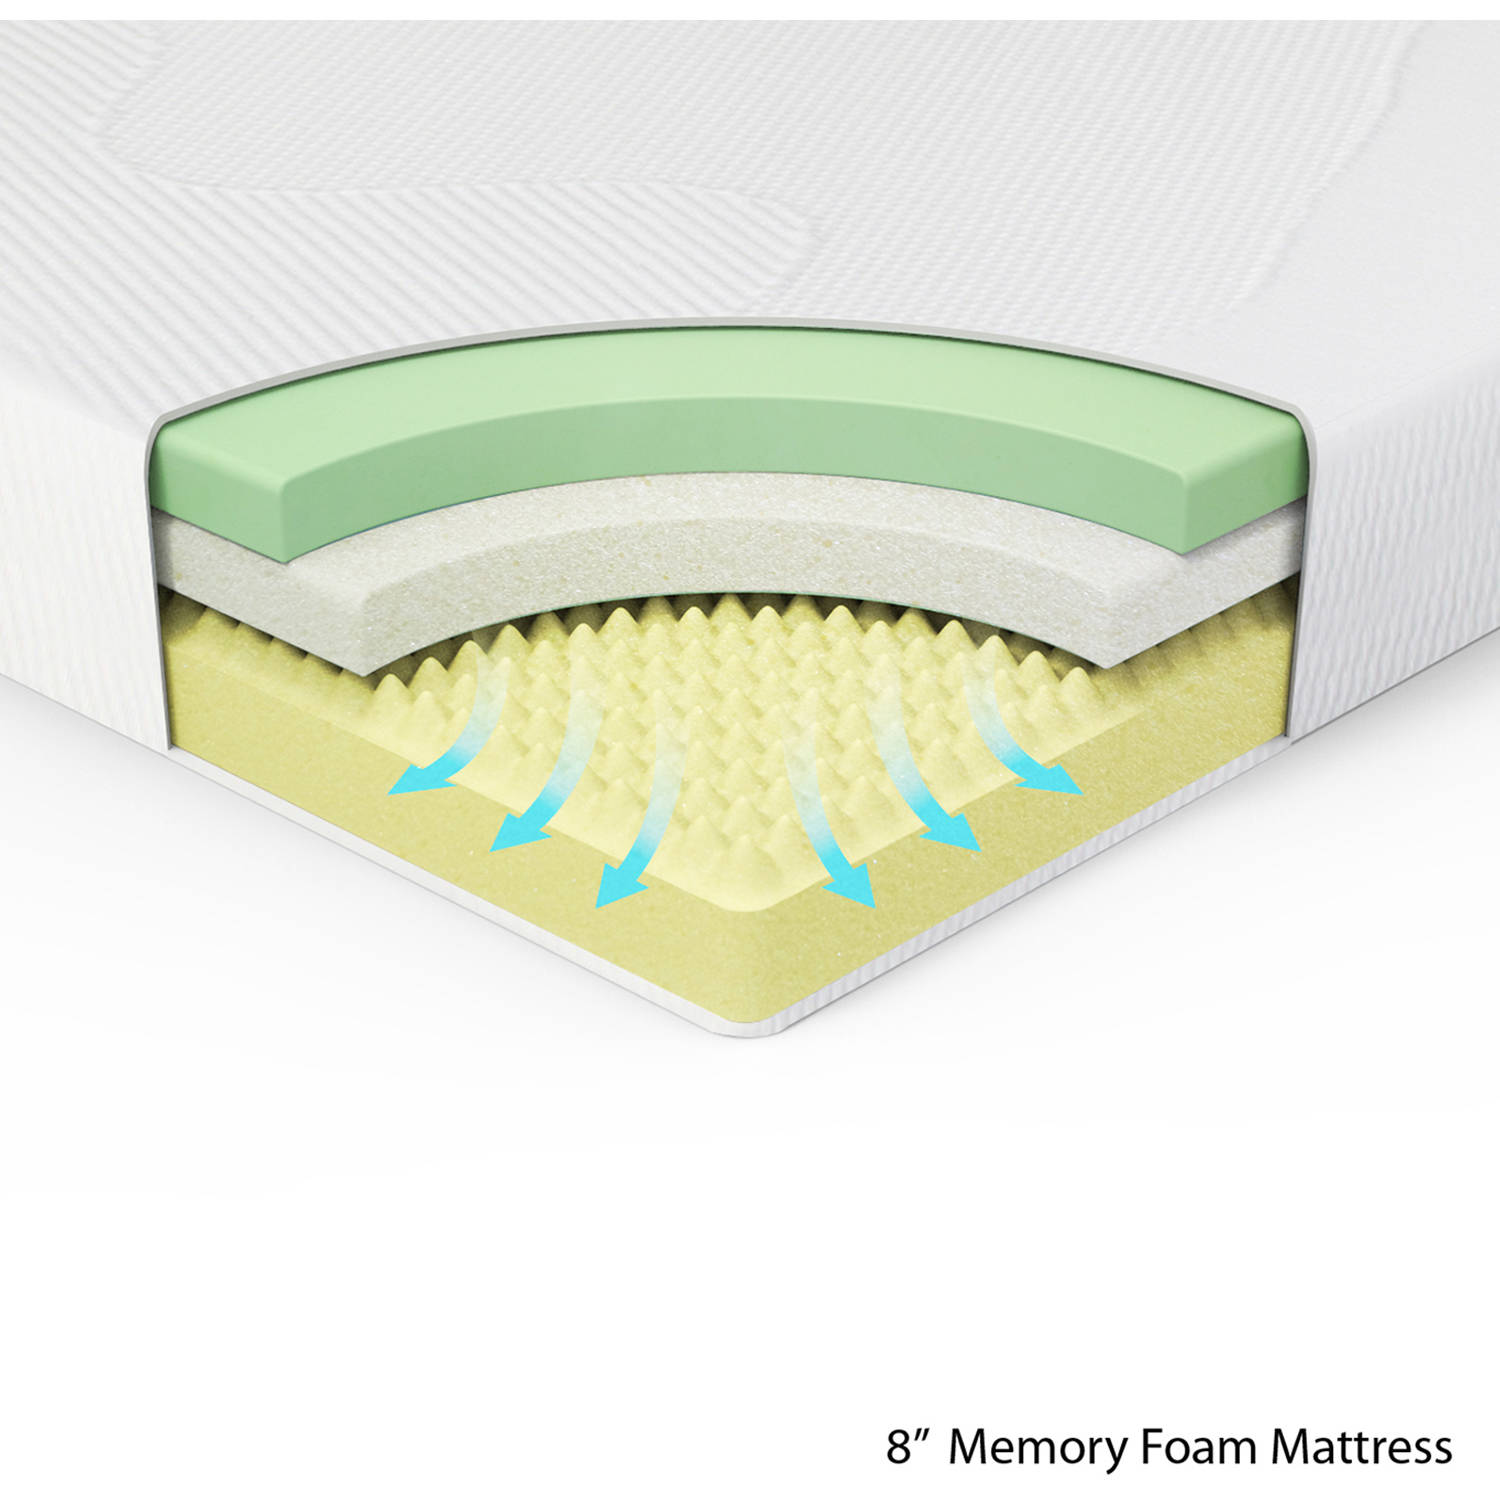 Spa sensations 8 memory foam mattress full size ebay Full size memory foam mattress